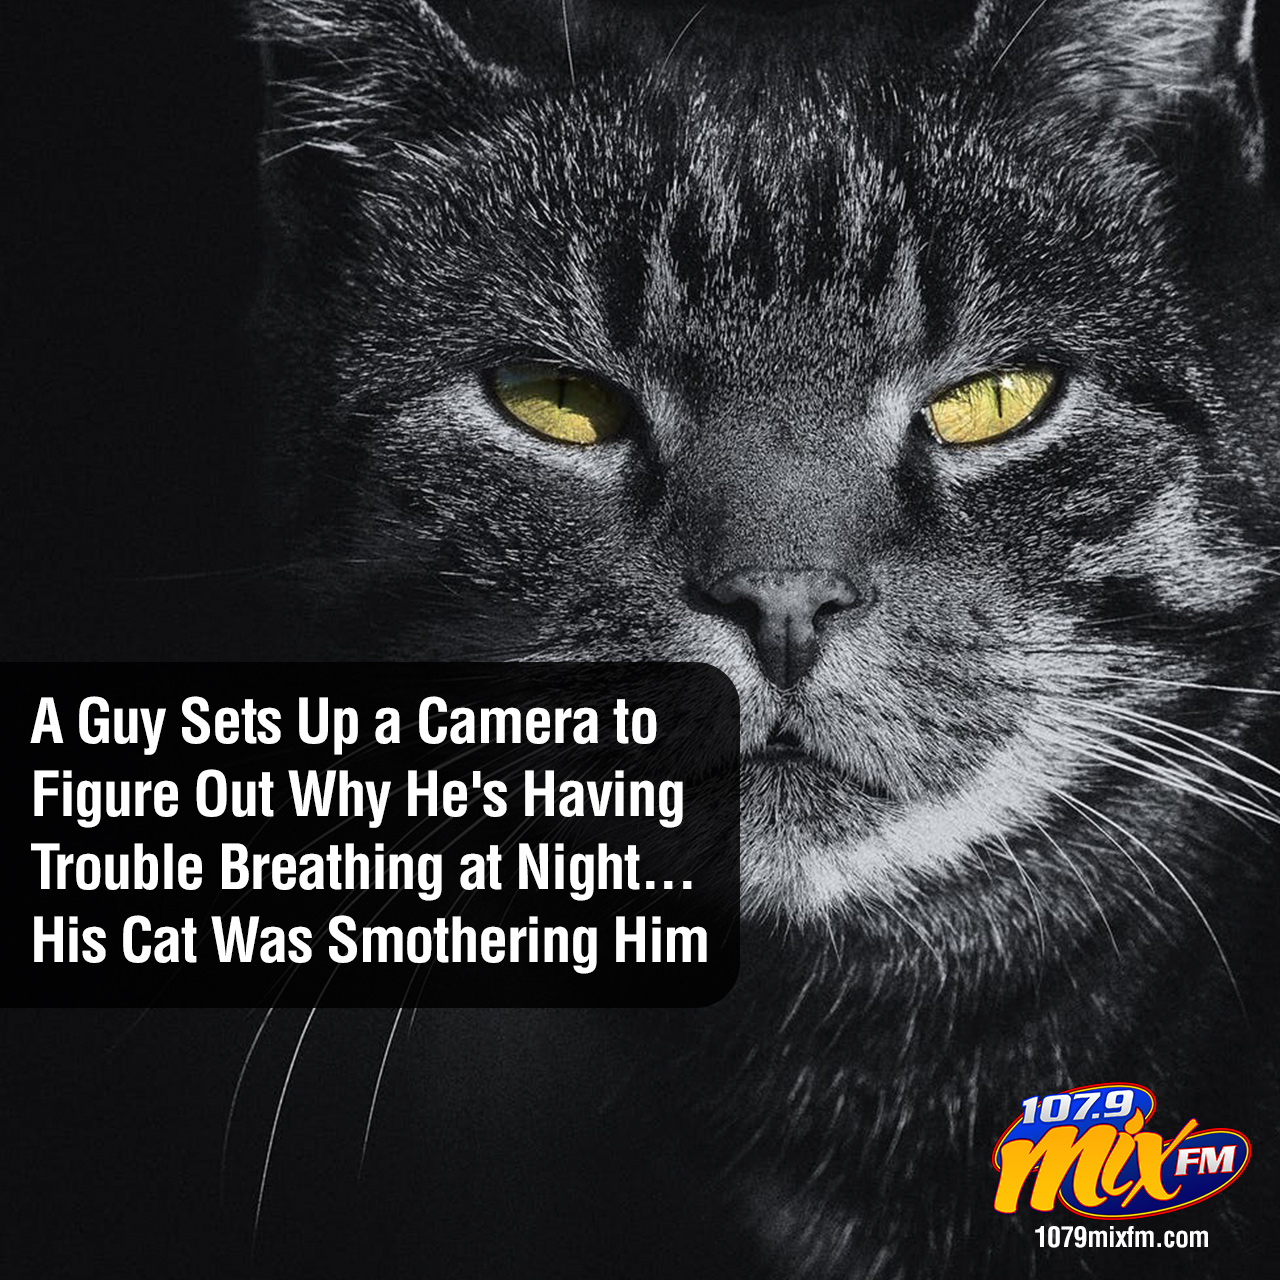 A Guy Sets Up a Camera to Figure Out Why He's Having Trouble Breathing at Night… His Cat Was Smothering Him